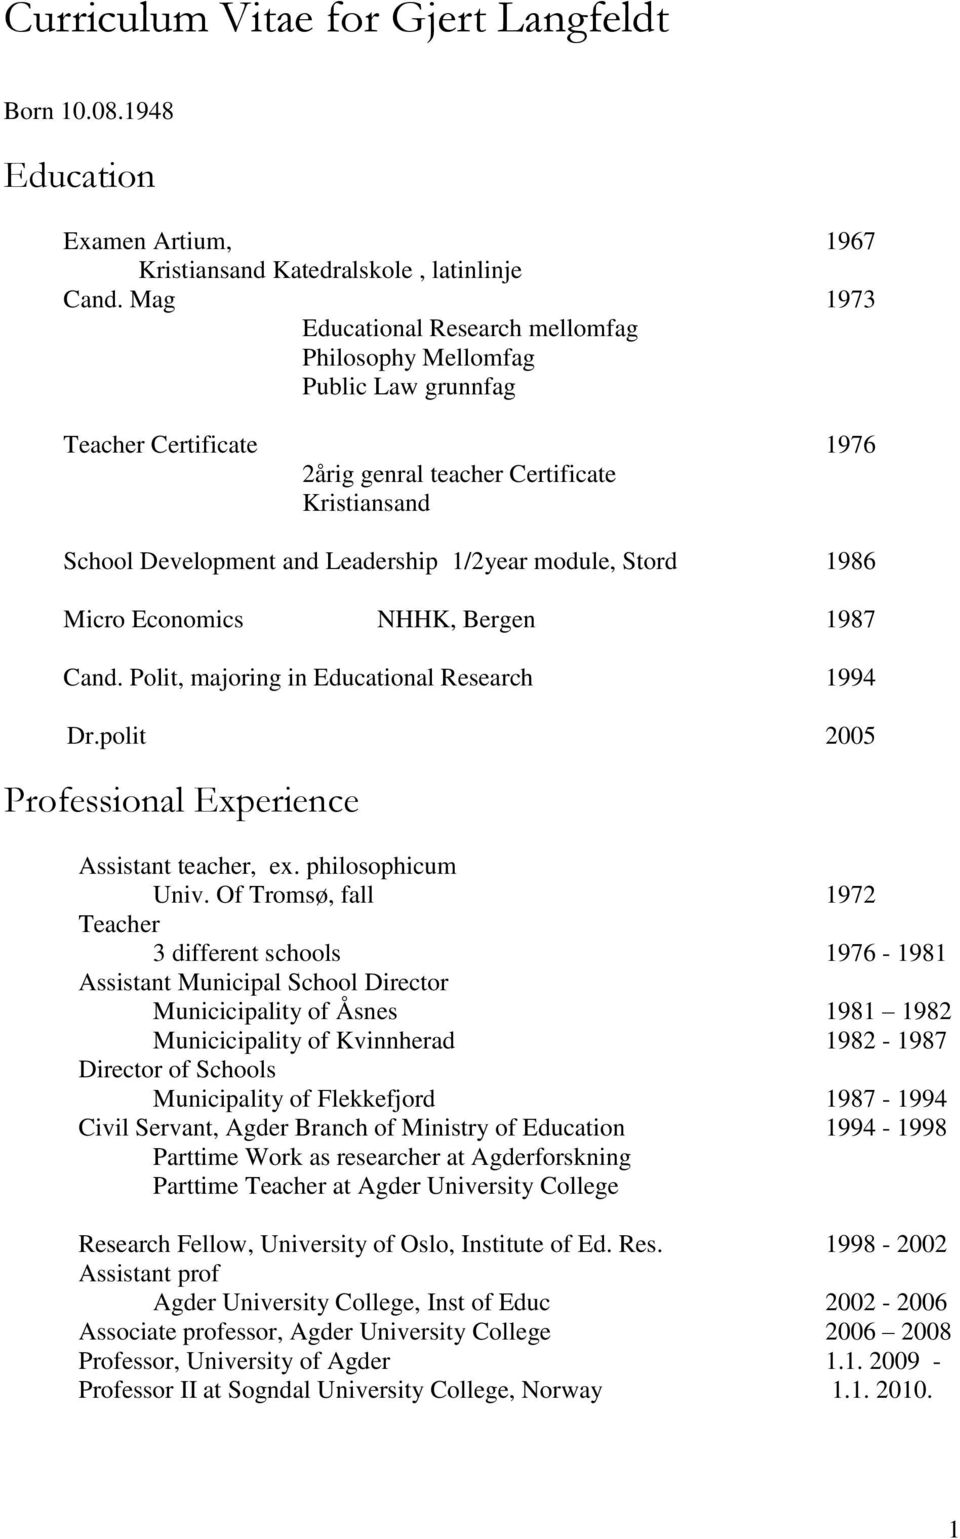 module, Stord 1986 Micro Economics NHHK, Bergen 1987 Cand. Polit, majoring in Educational Research 1994 Dr.polit 2005 Professional Experience Assistant teacher, ex. philosophicum Univ.